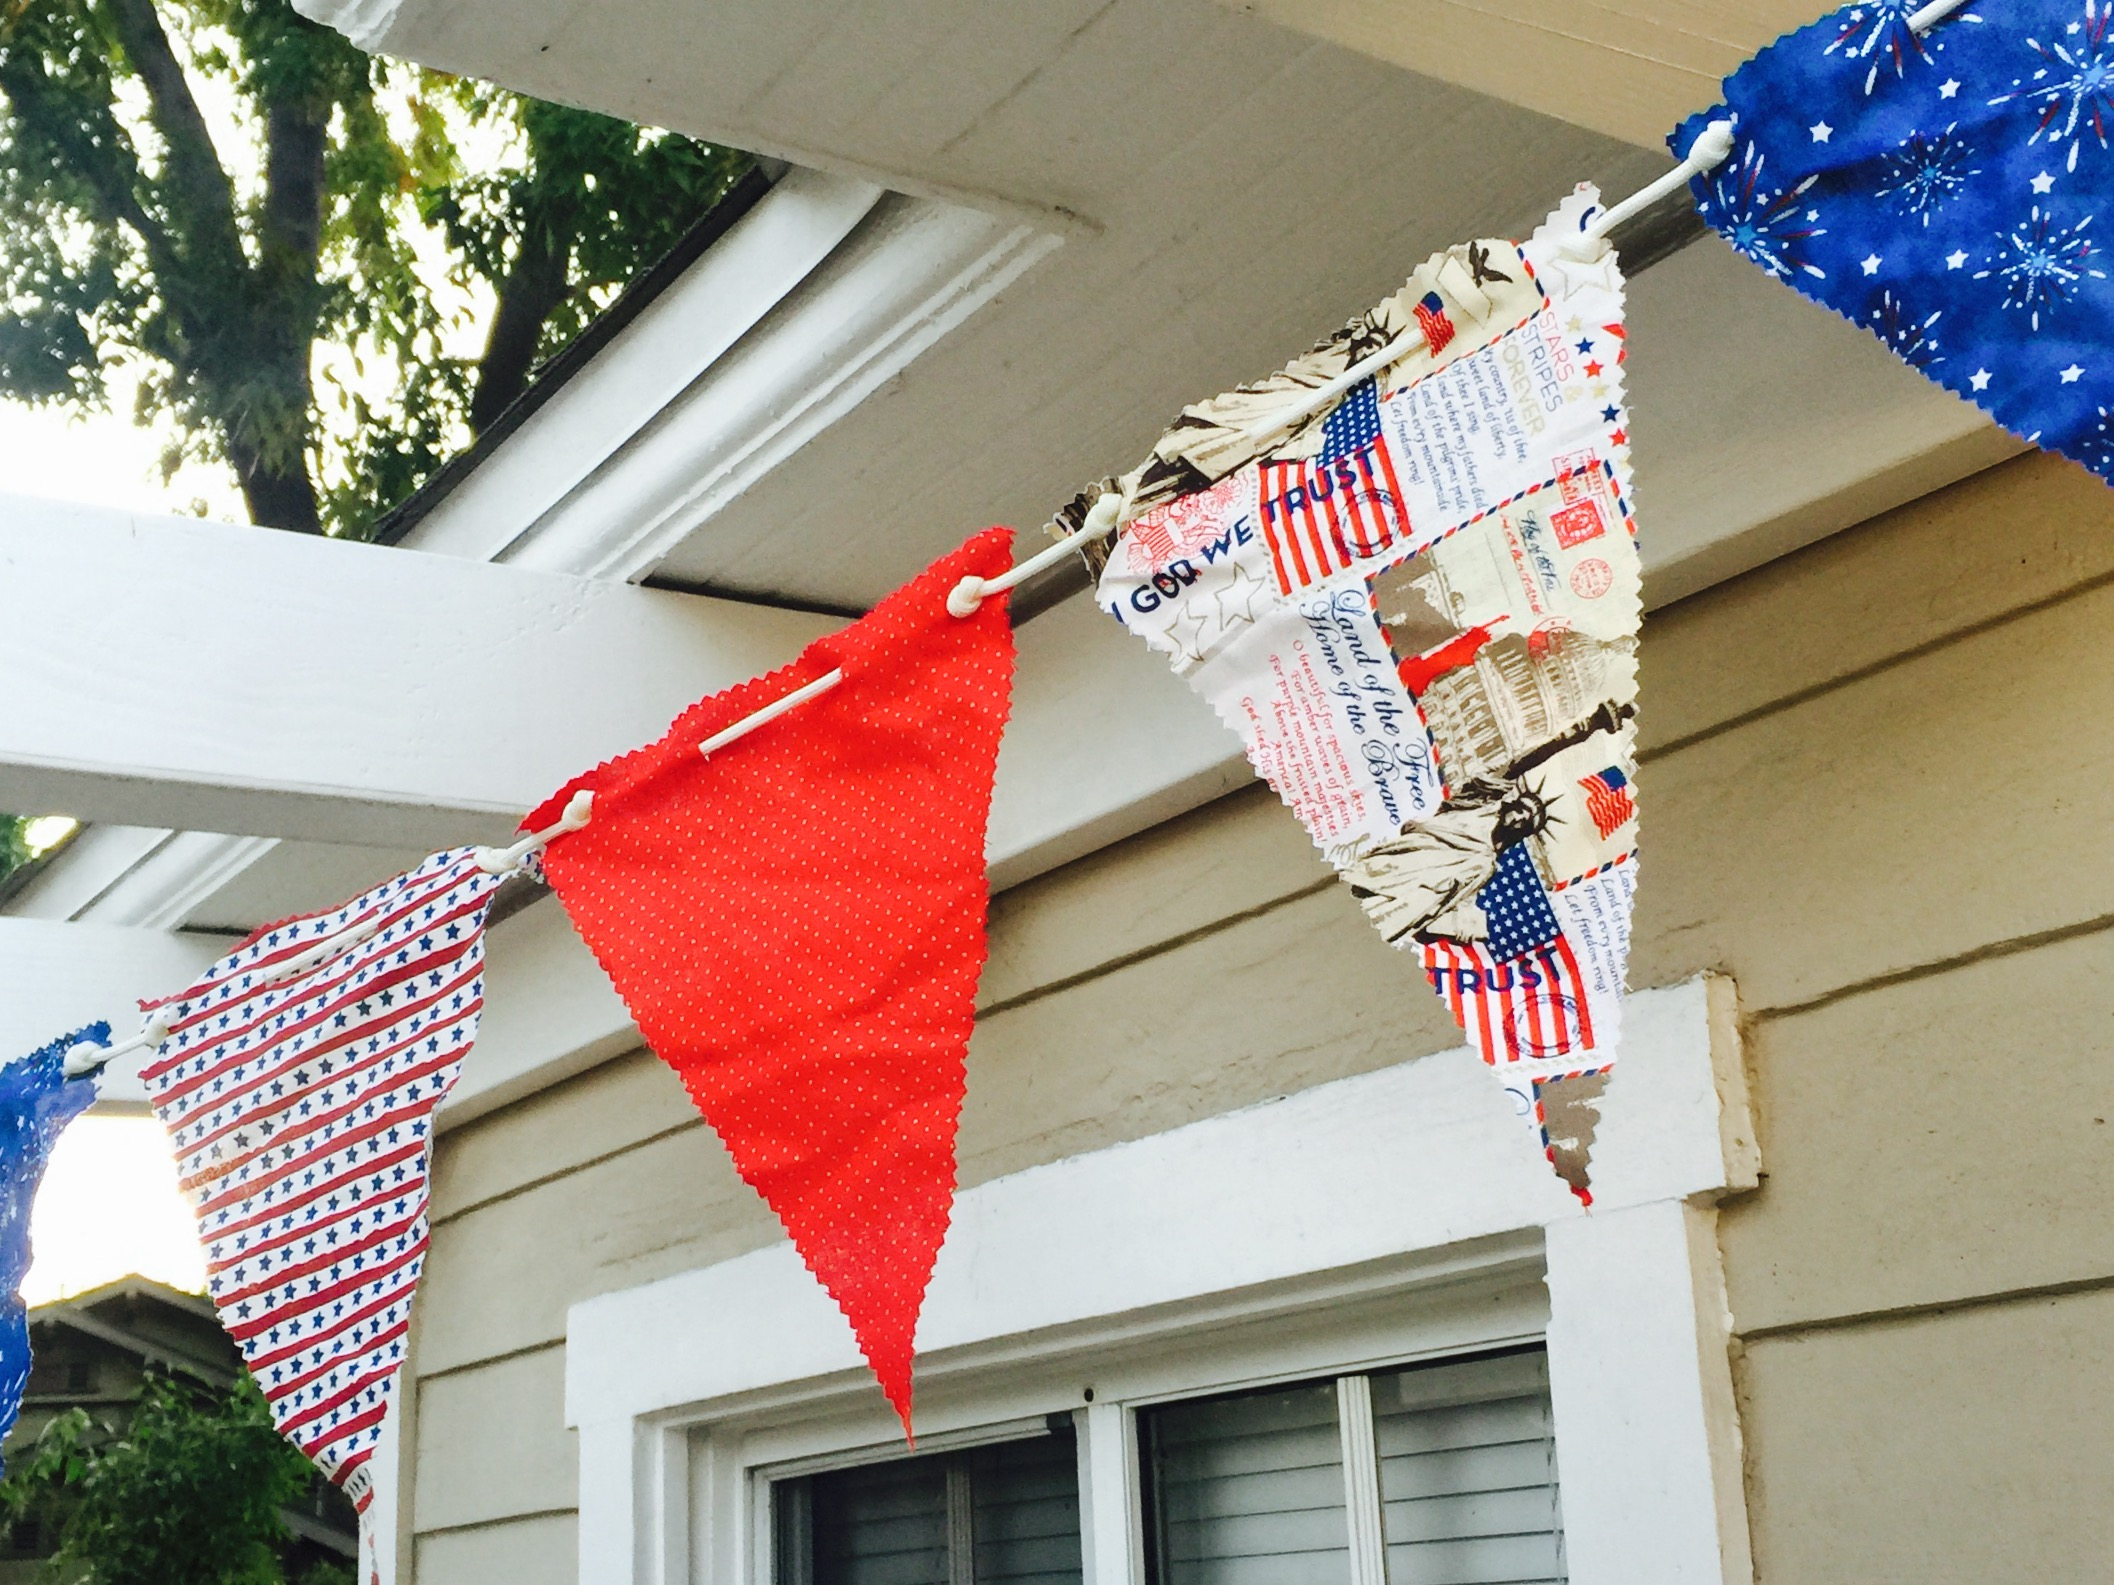 July 4th flags